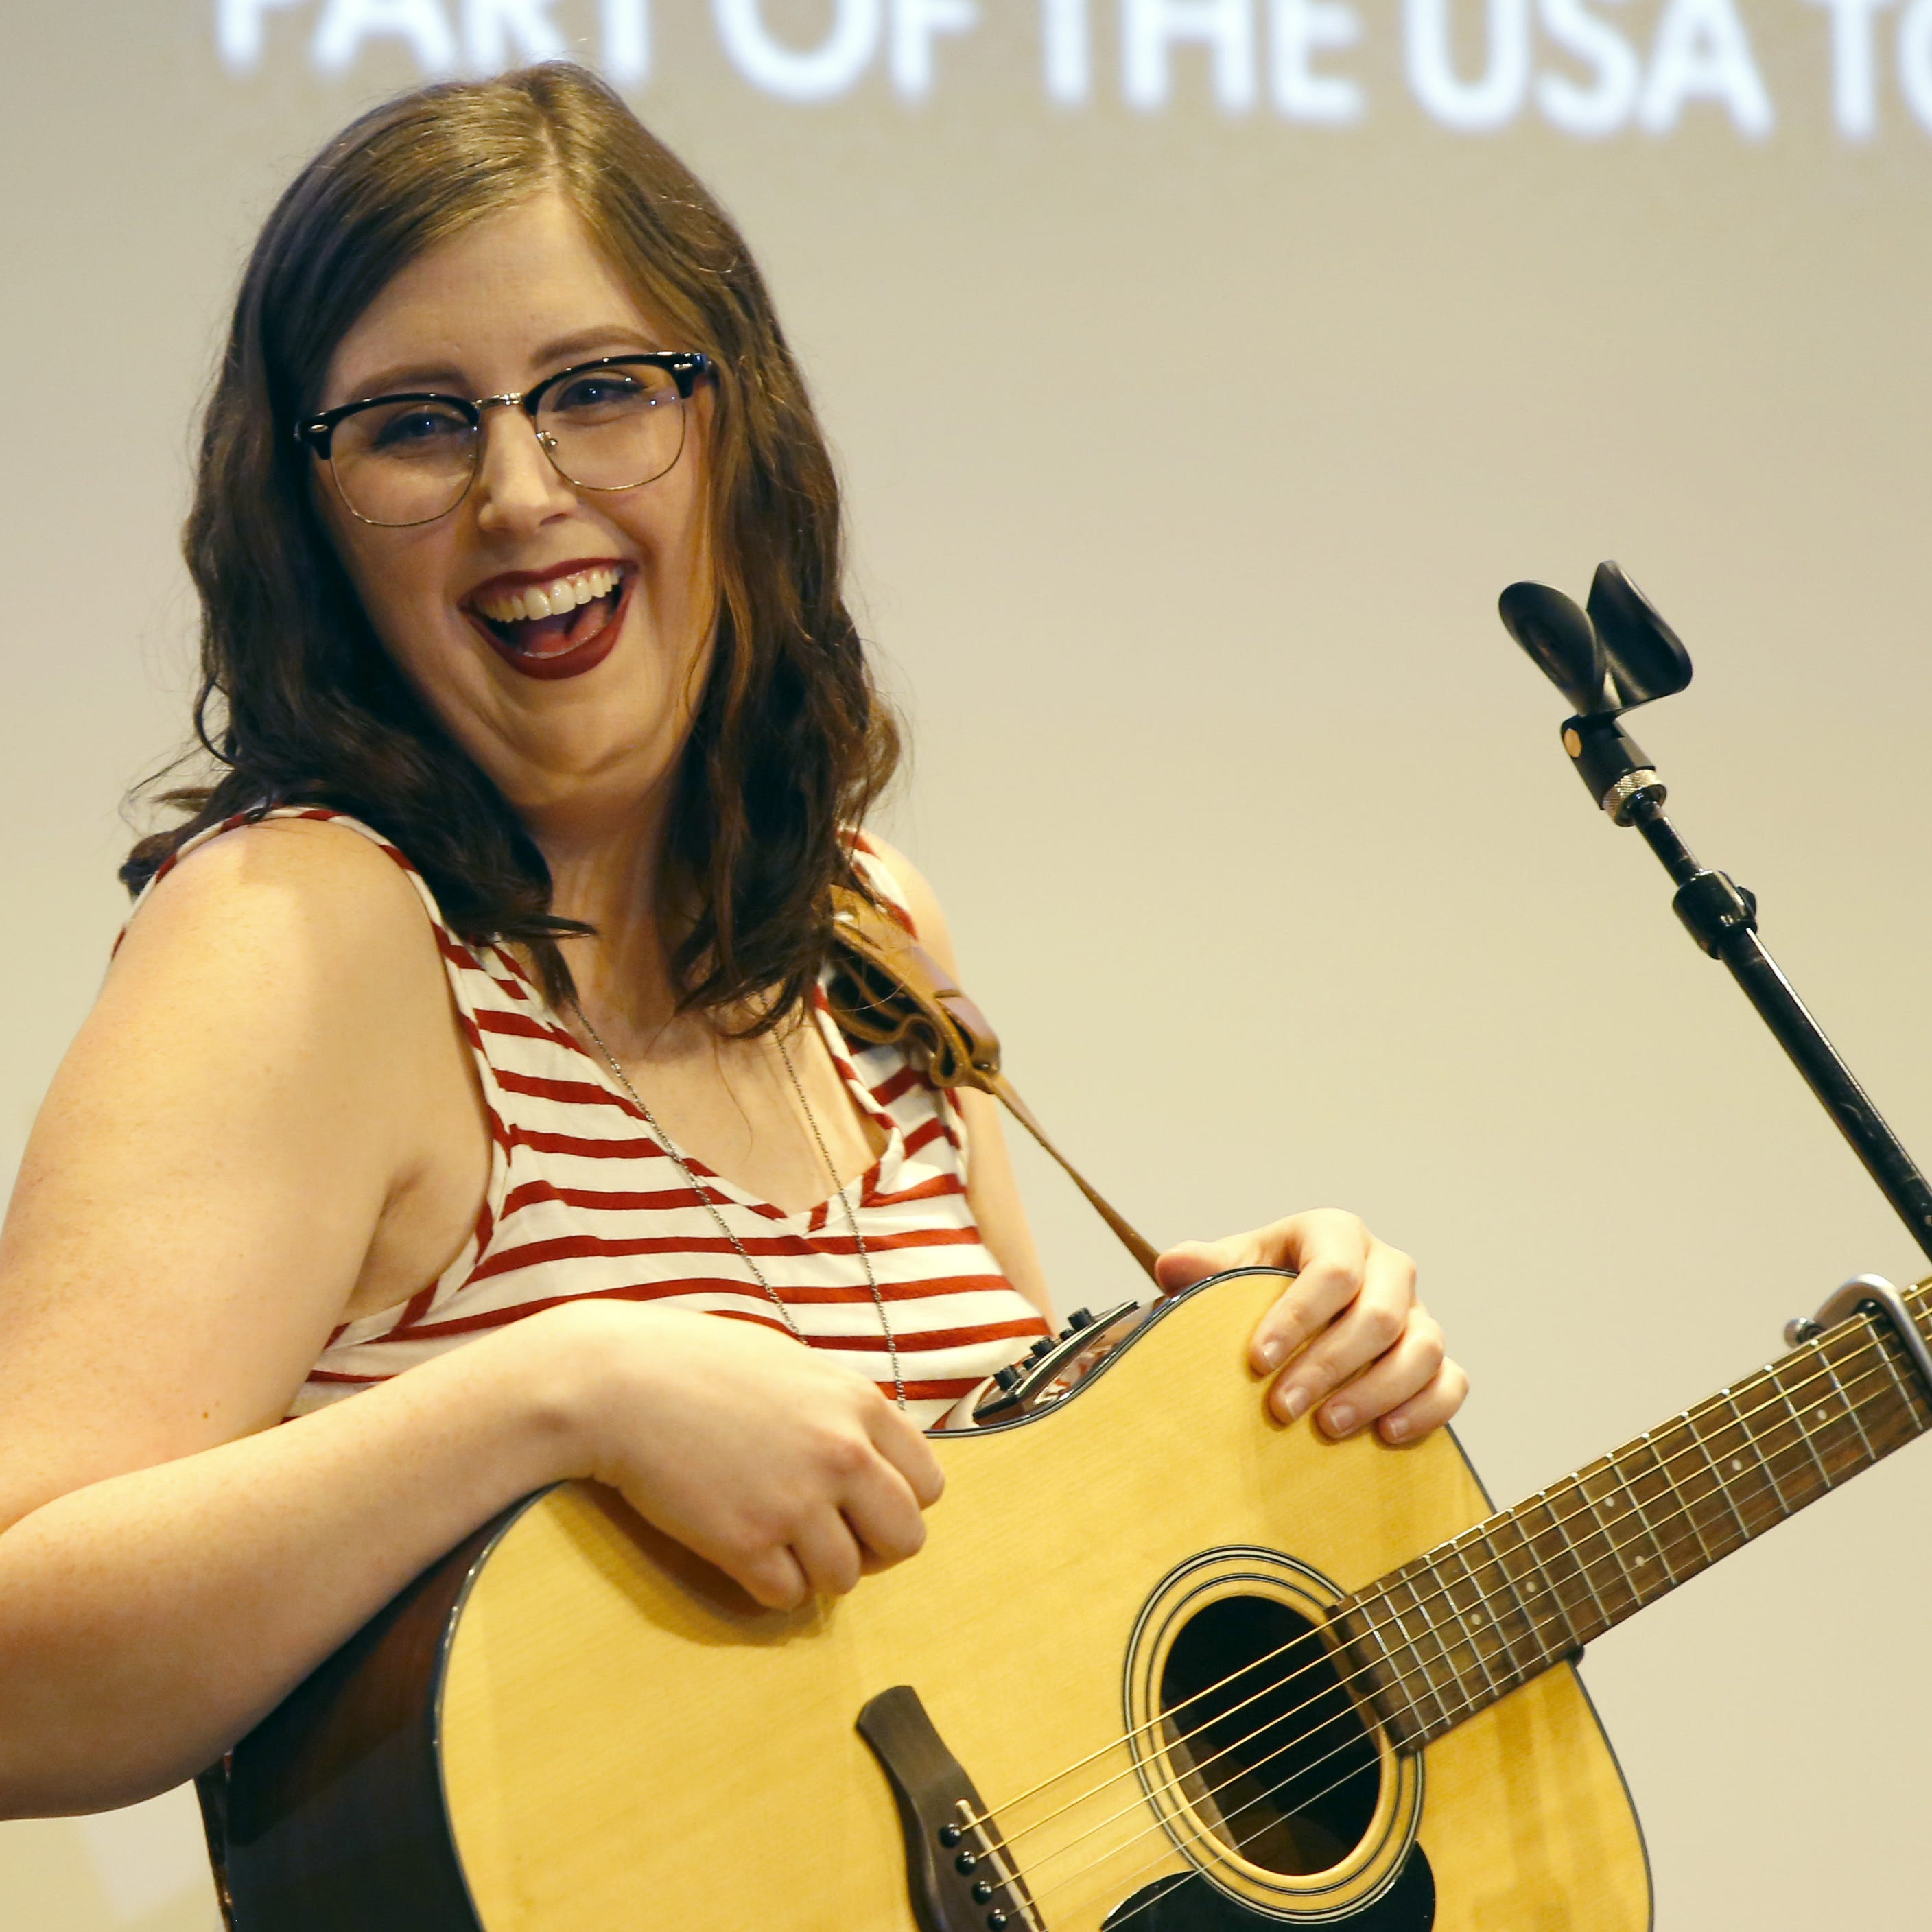 Jersey Storytellers packs The Asbury with 'good' ideas gone wrong